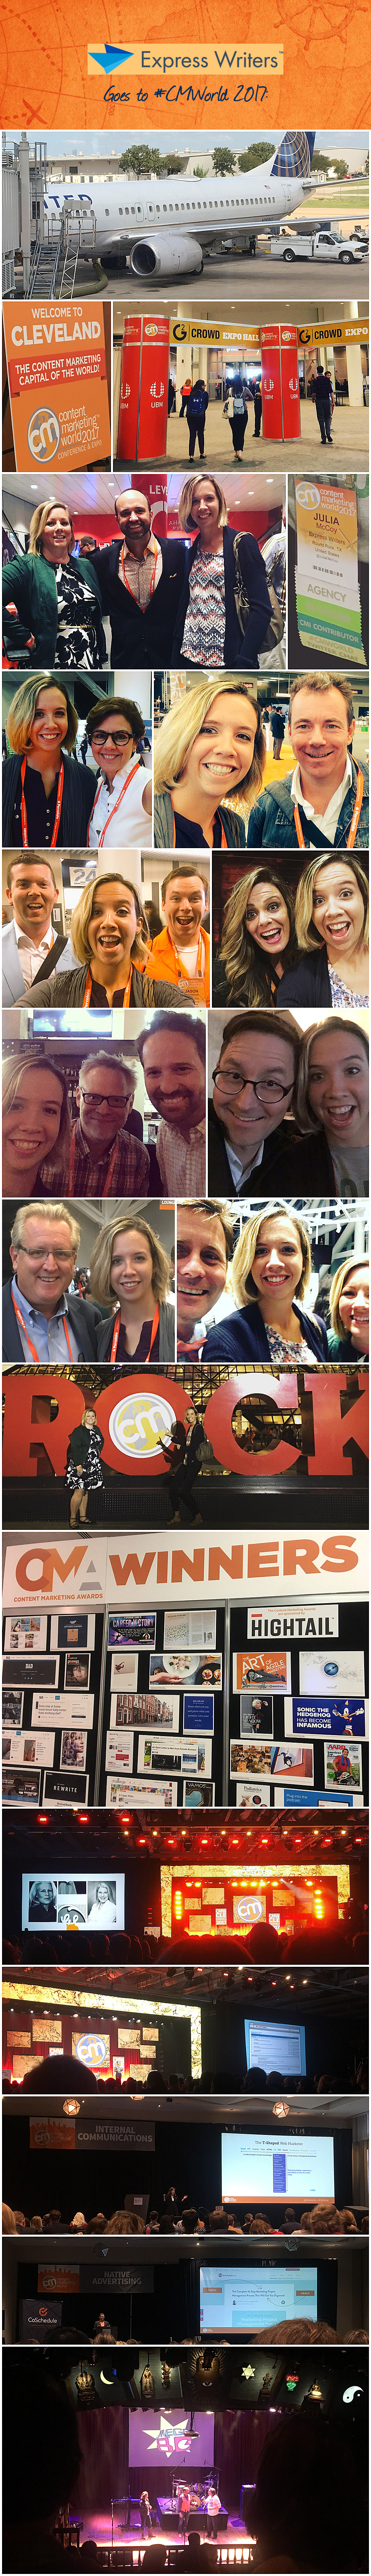 cmworld 2017 express writers collage